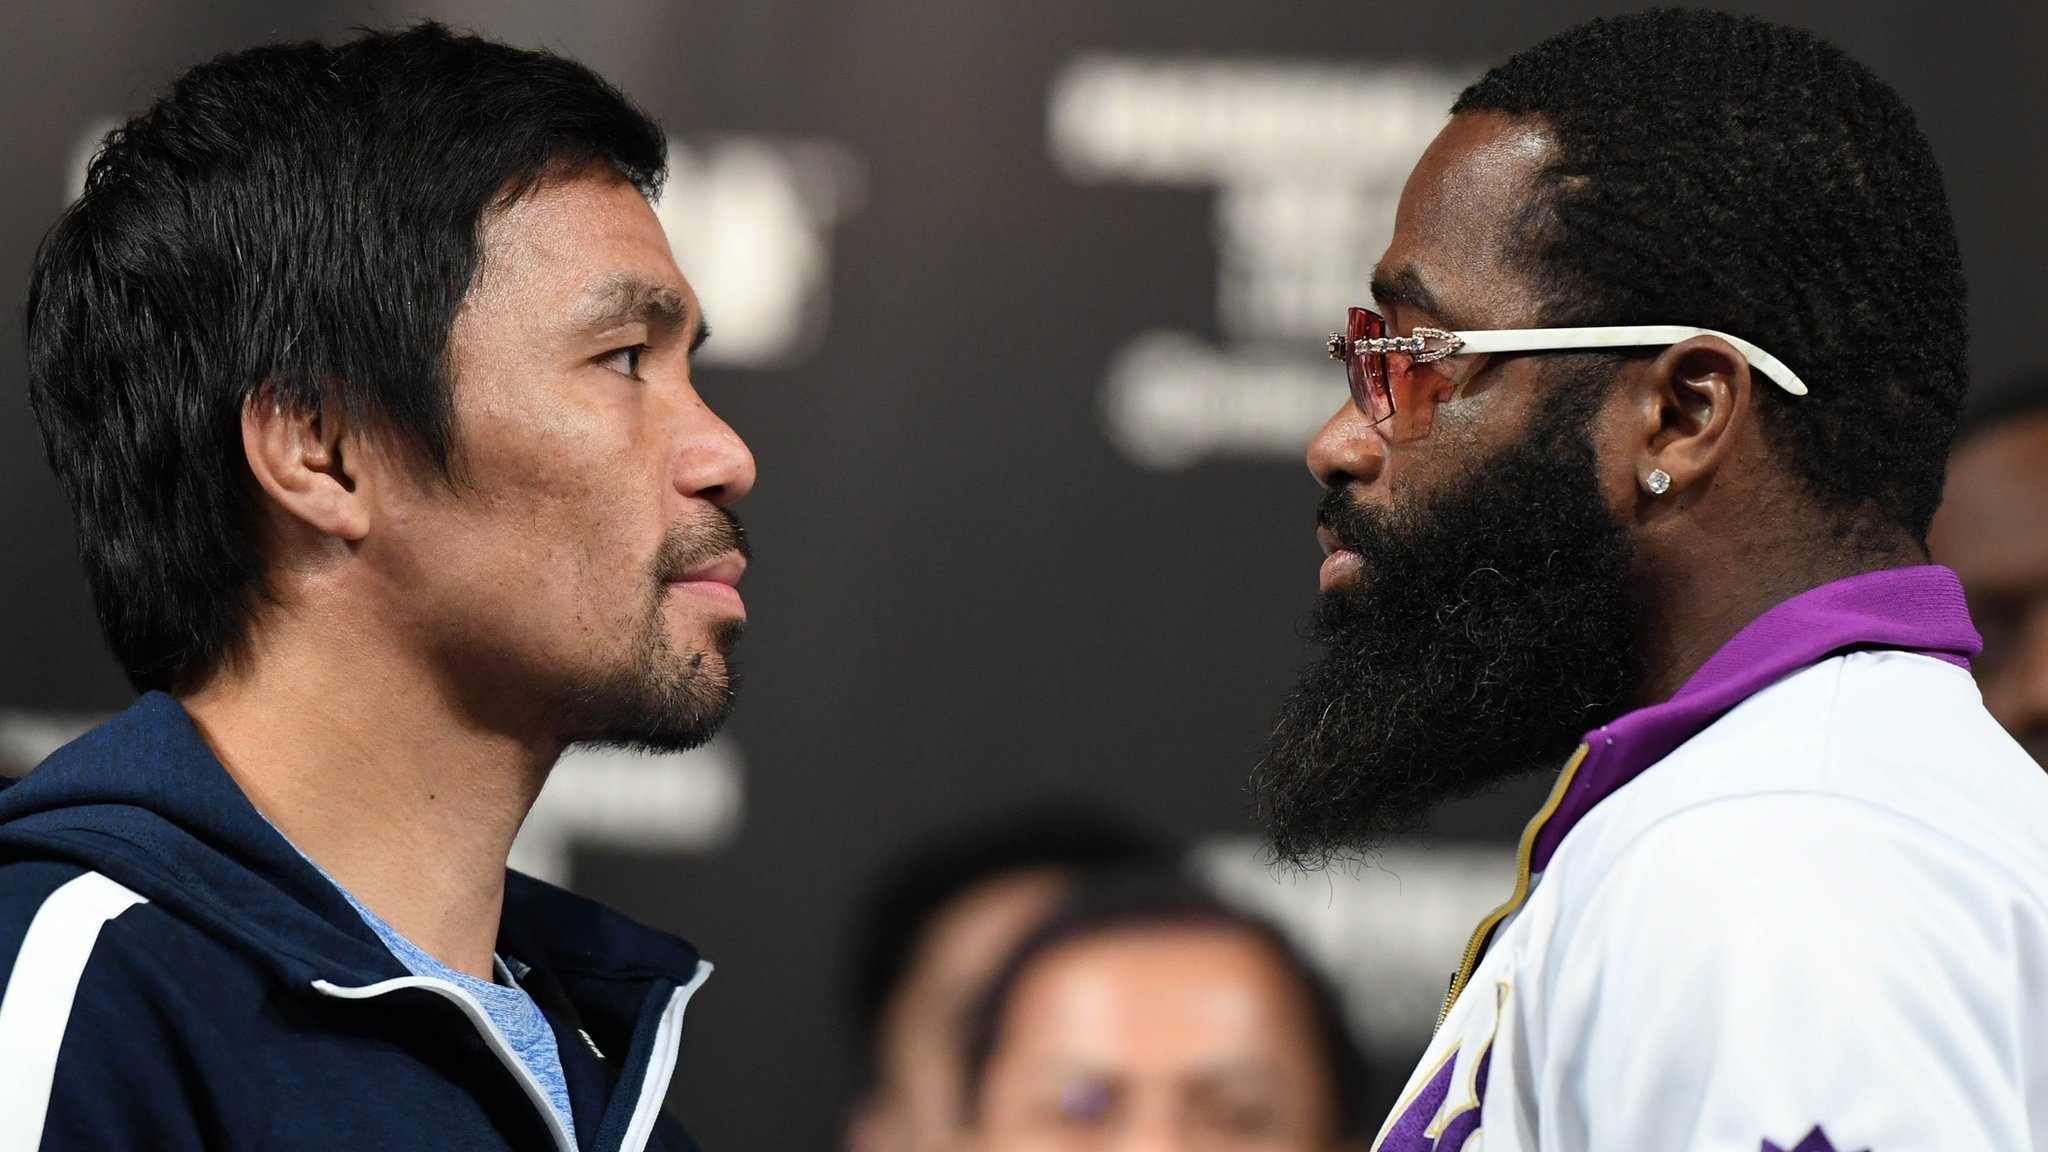 Manny Pacquiao v Adrien Broner: WBA world champion ready for 70th pro fight